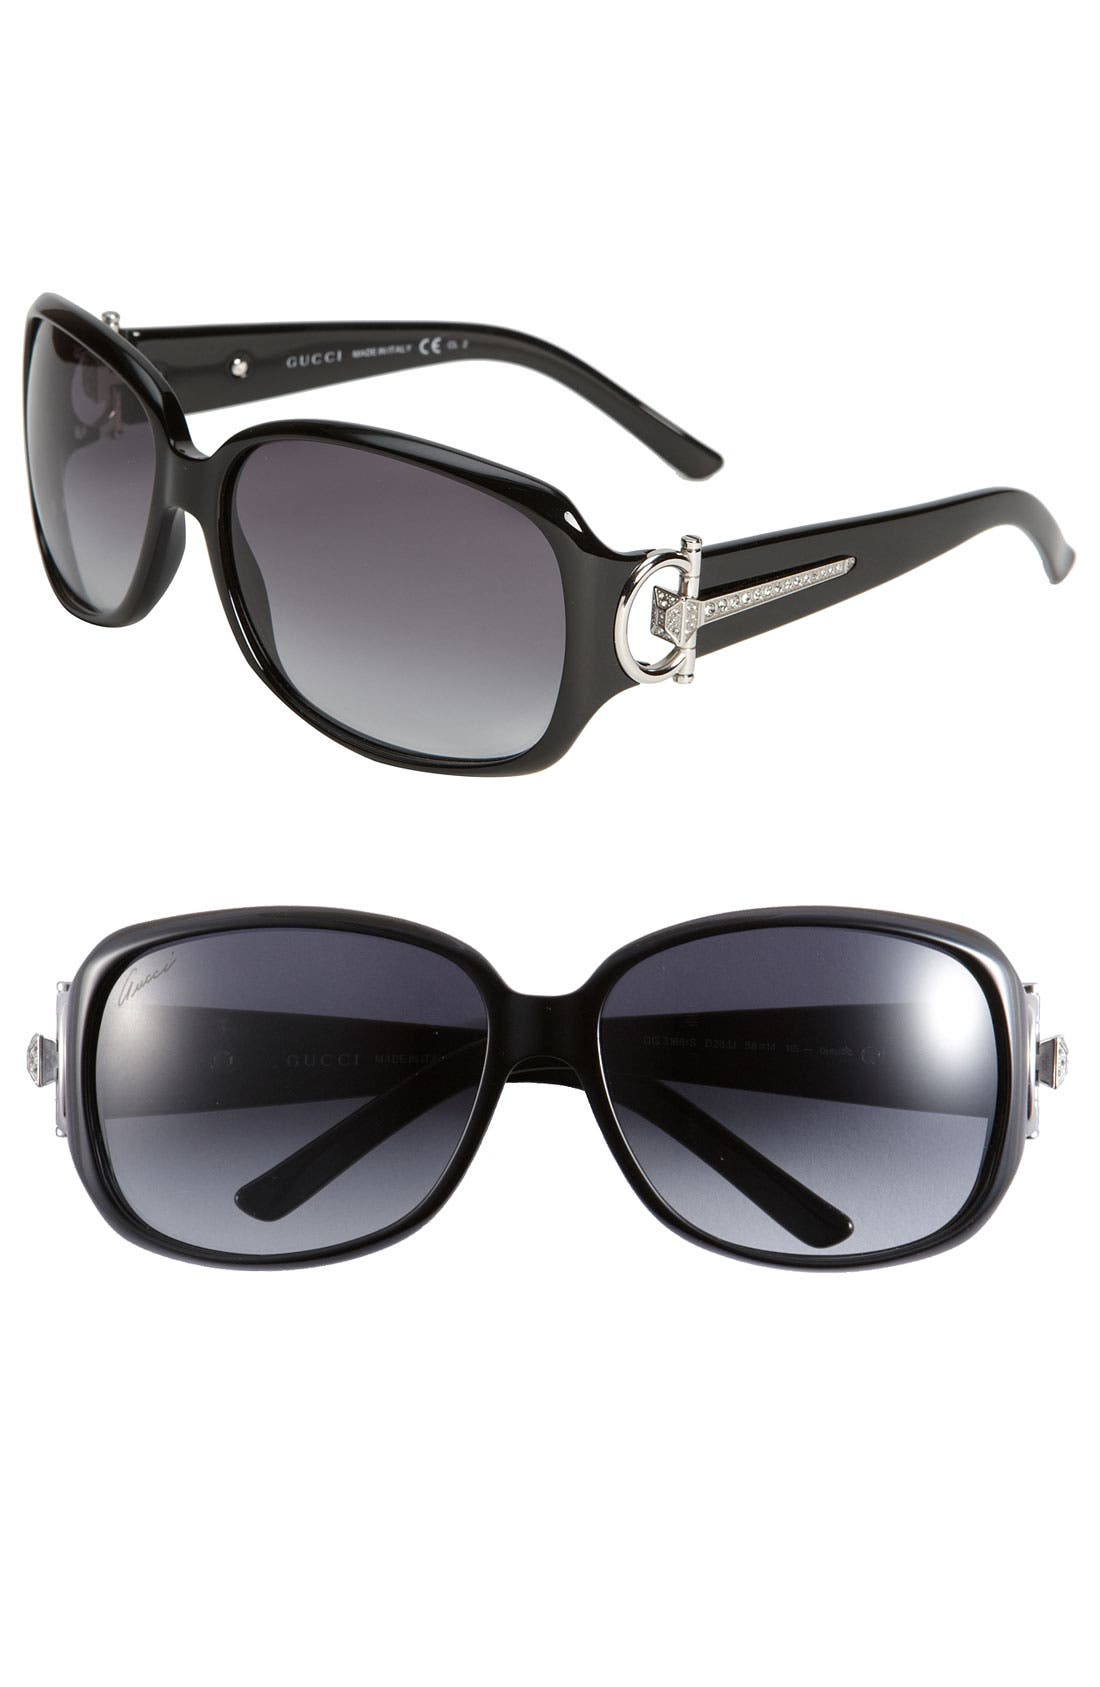 Main Image - Gucci 58mm Oversized Square Sunglasses